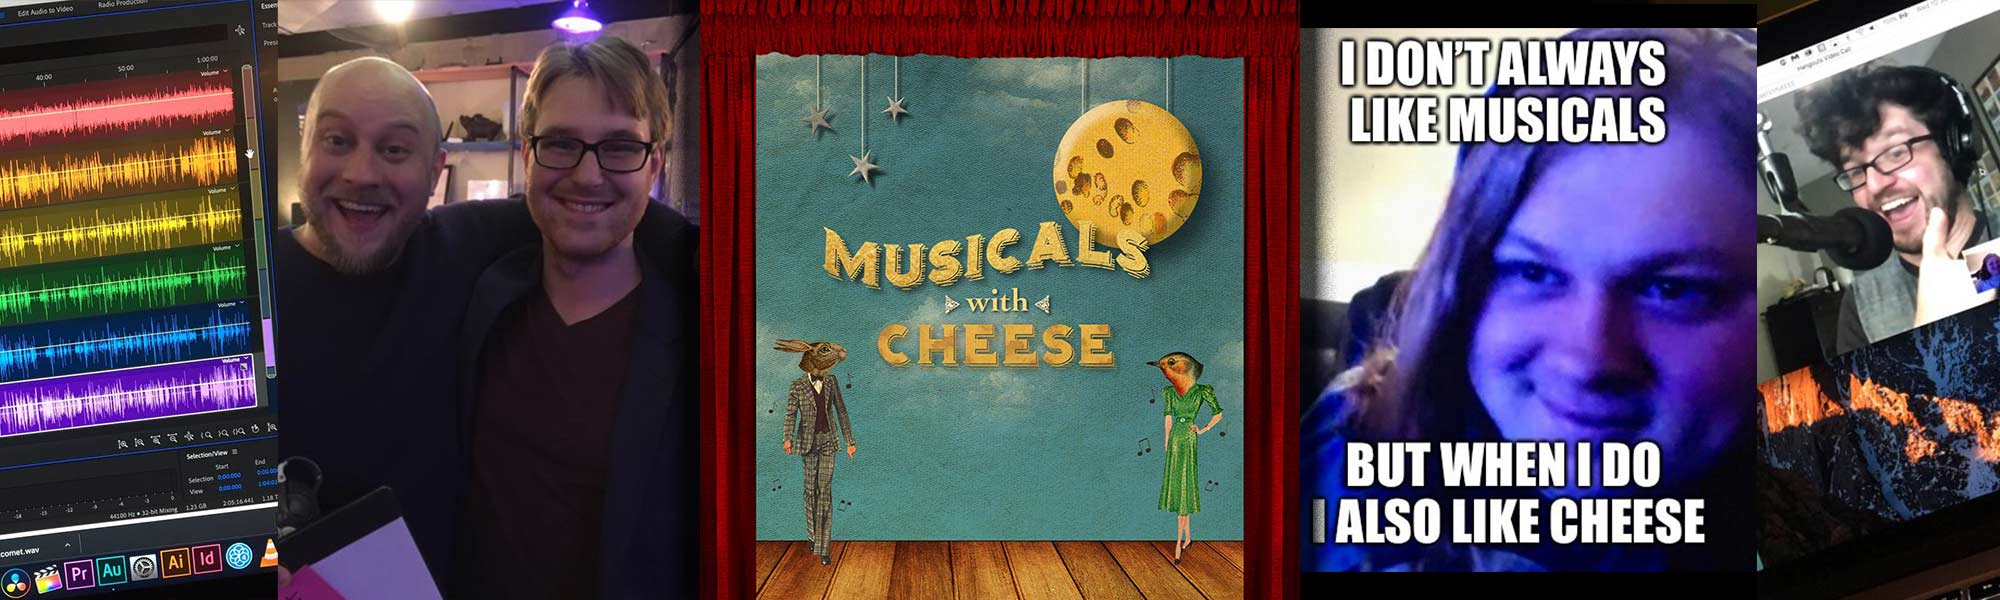 Musicals with Cheese 2000x600 header